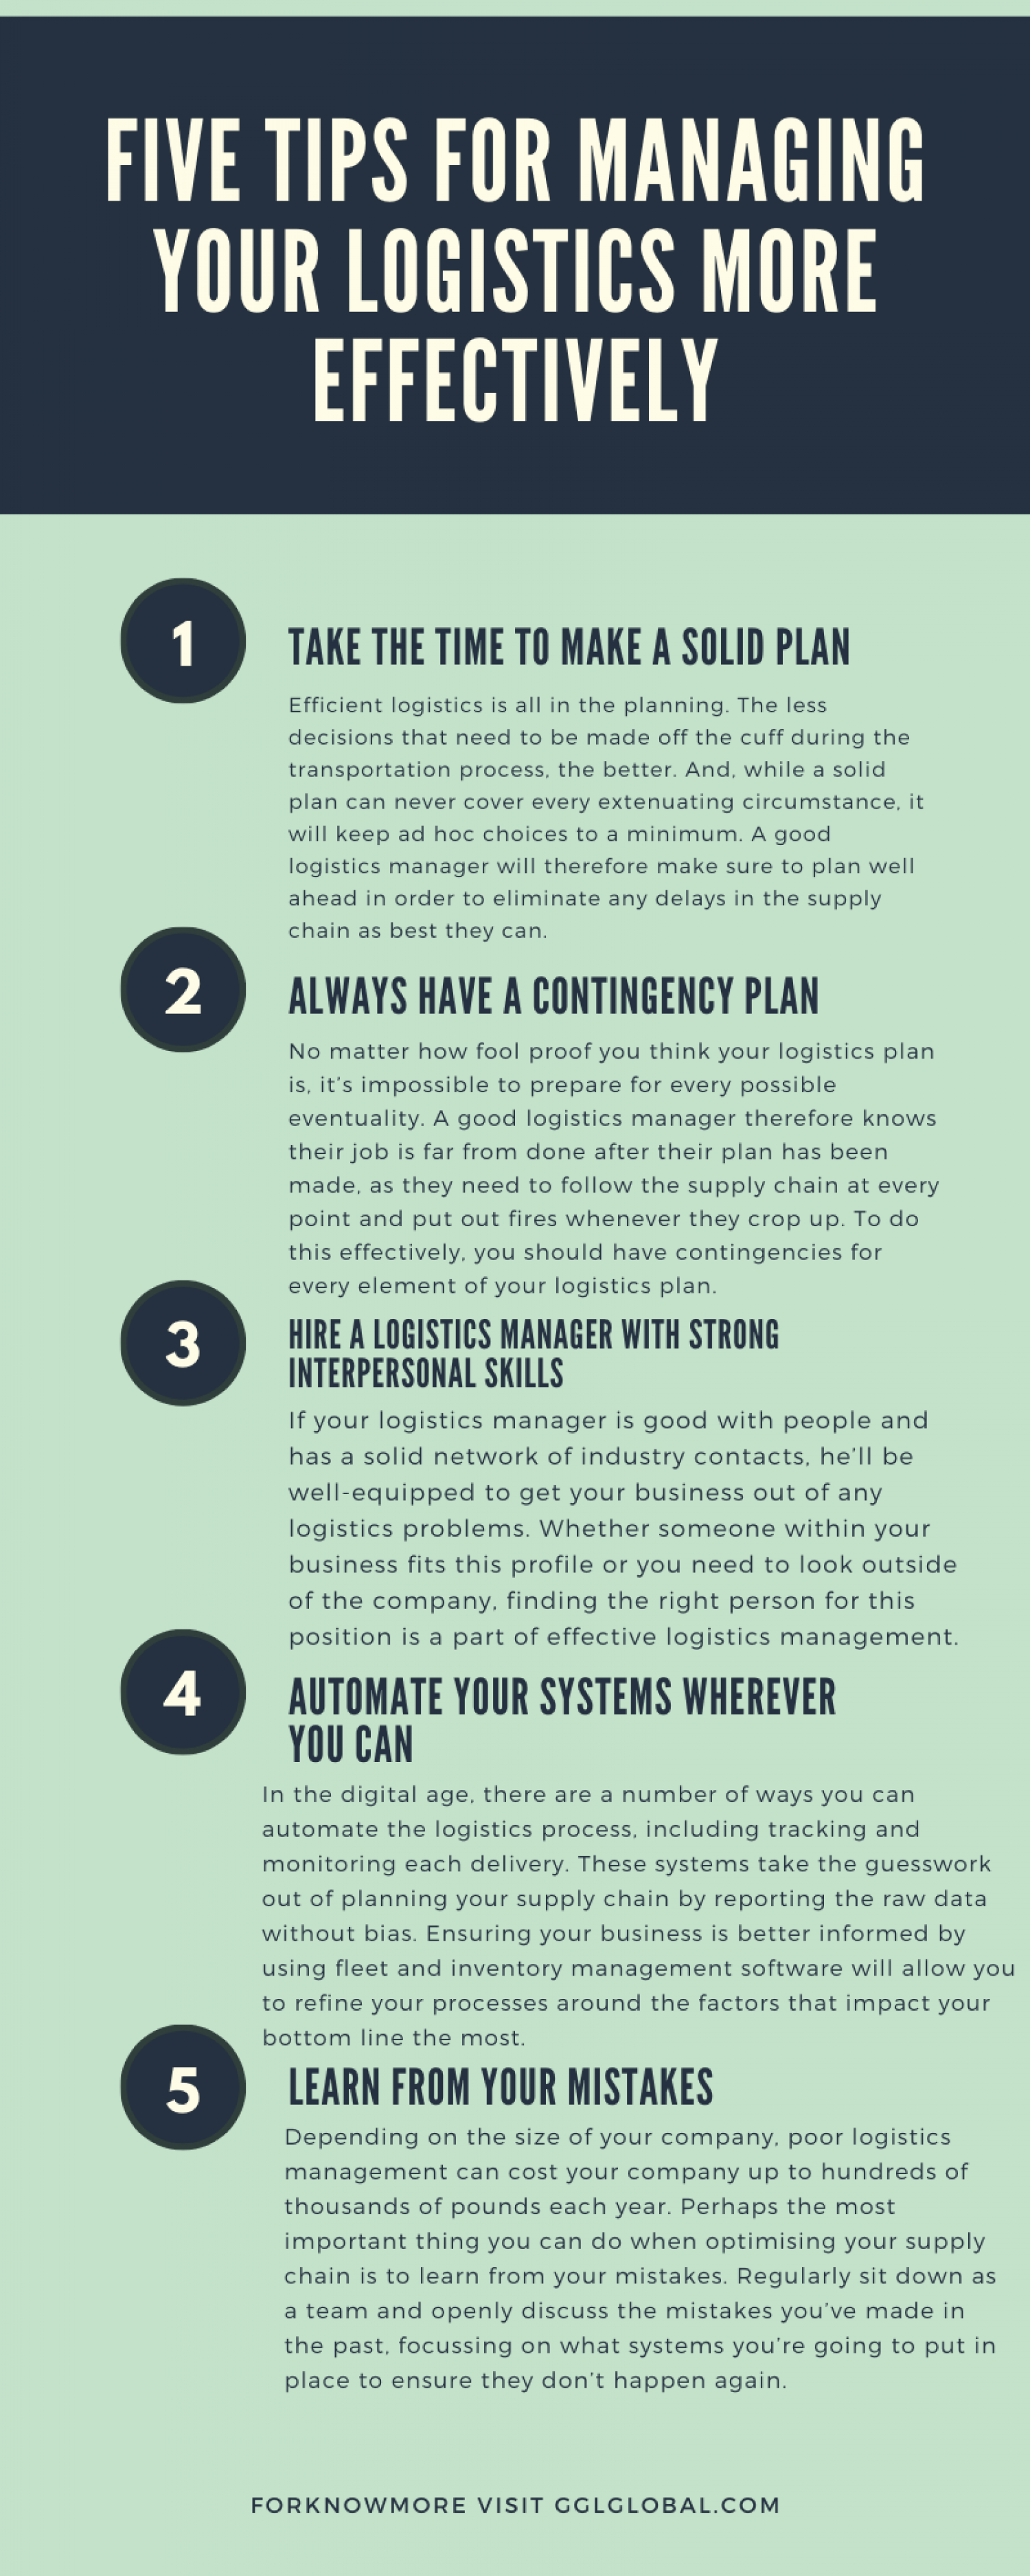 Five tips for managing your logistics more effectively. Infographic